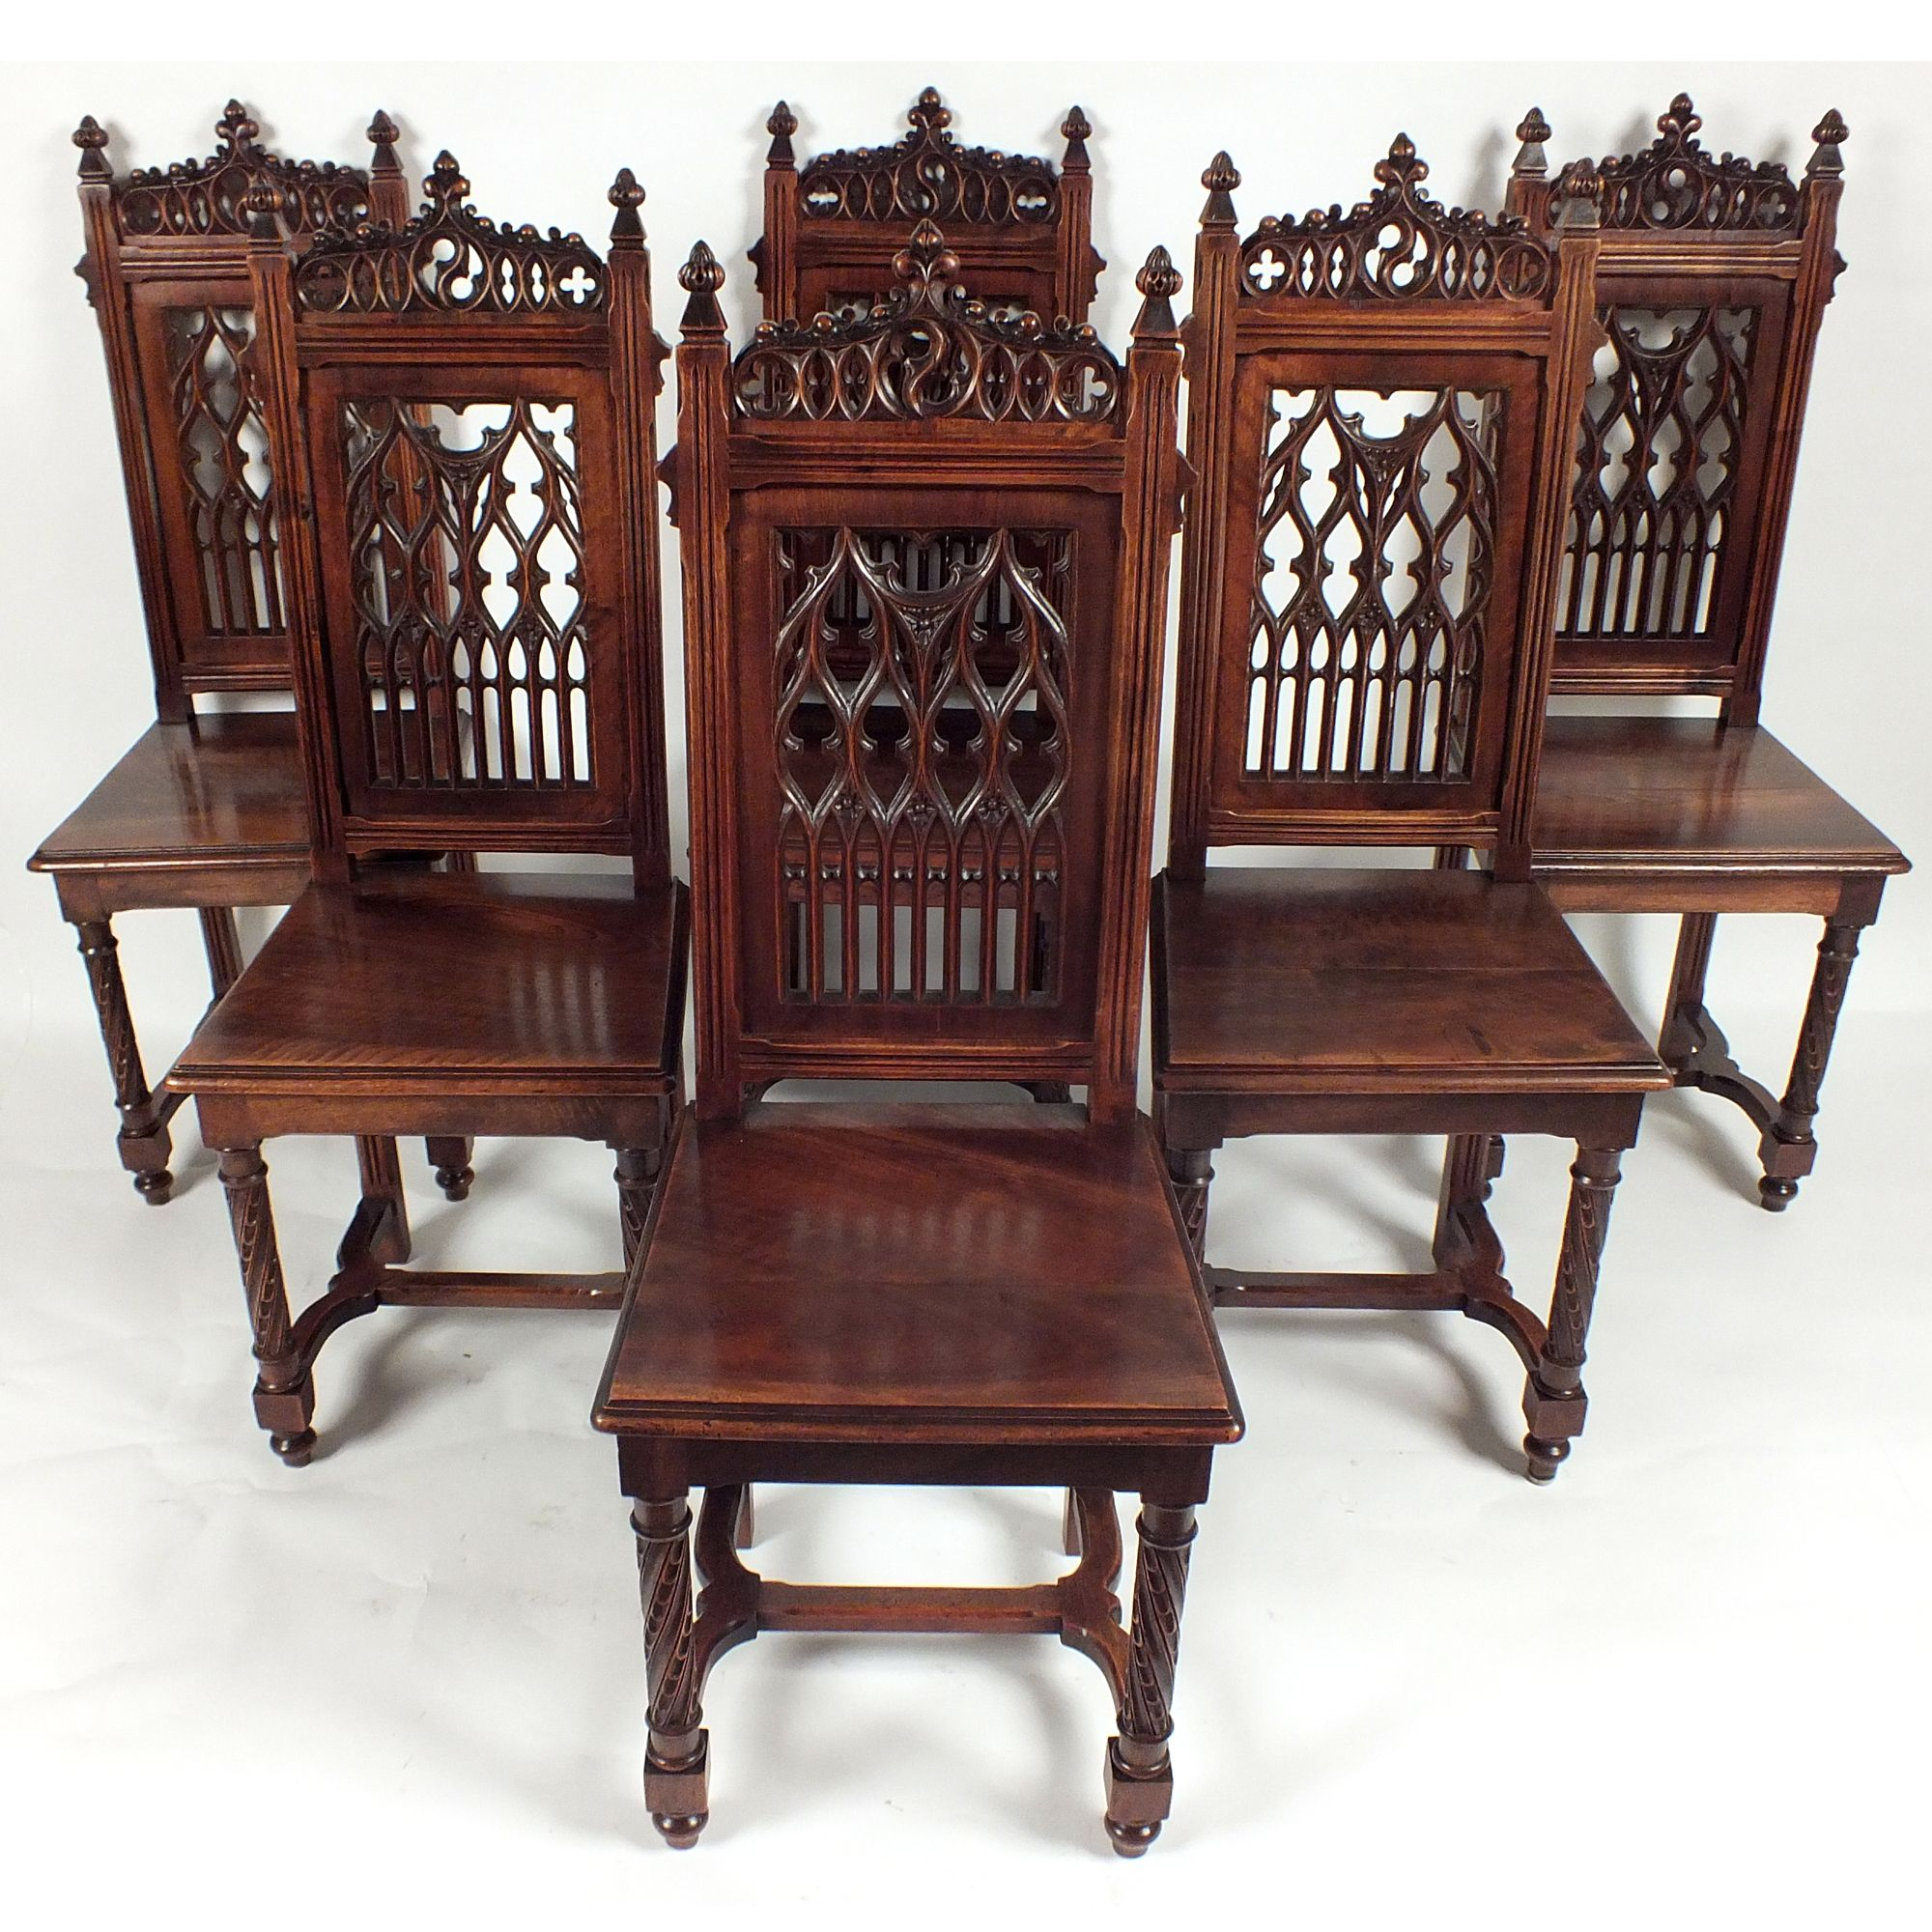 awesome Gothic Style Dining Room Furniture pictures gallery